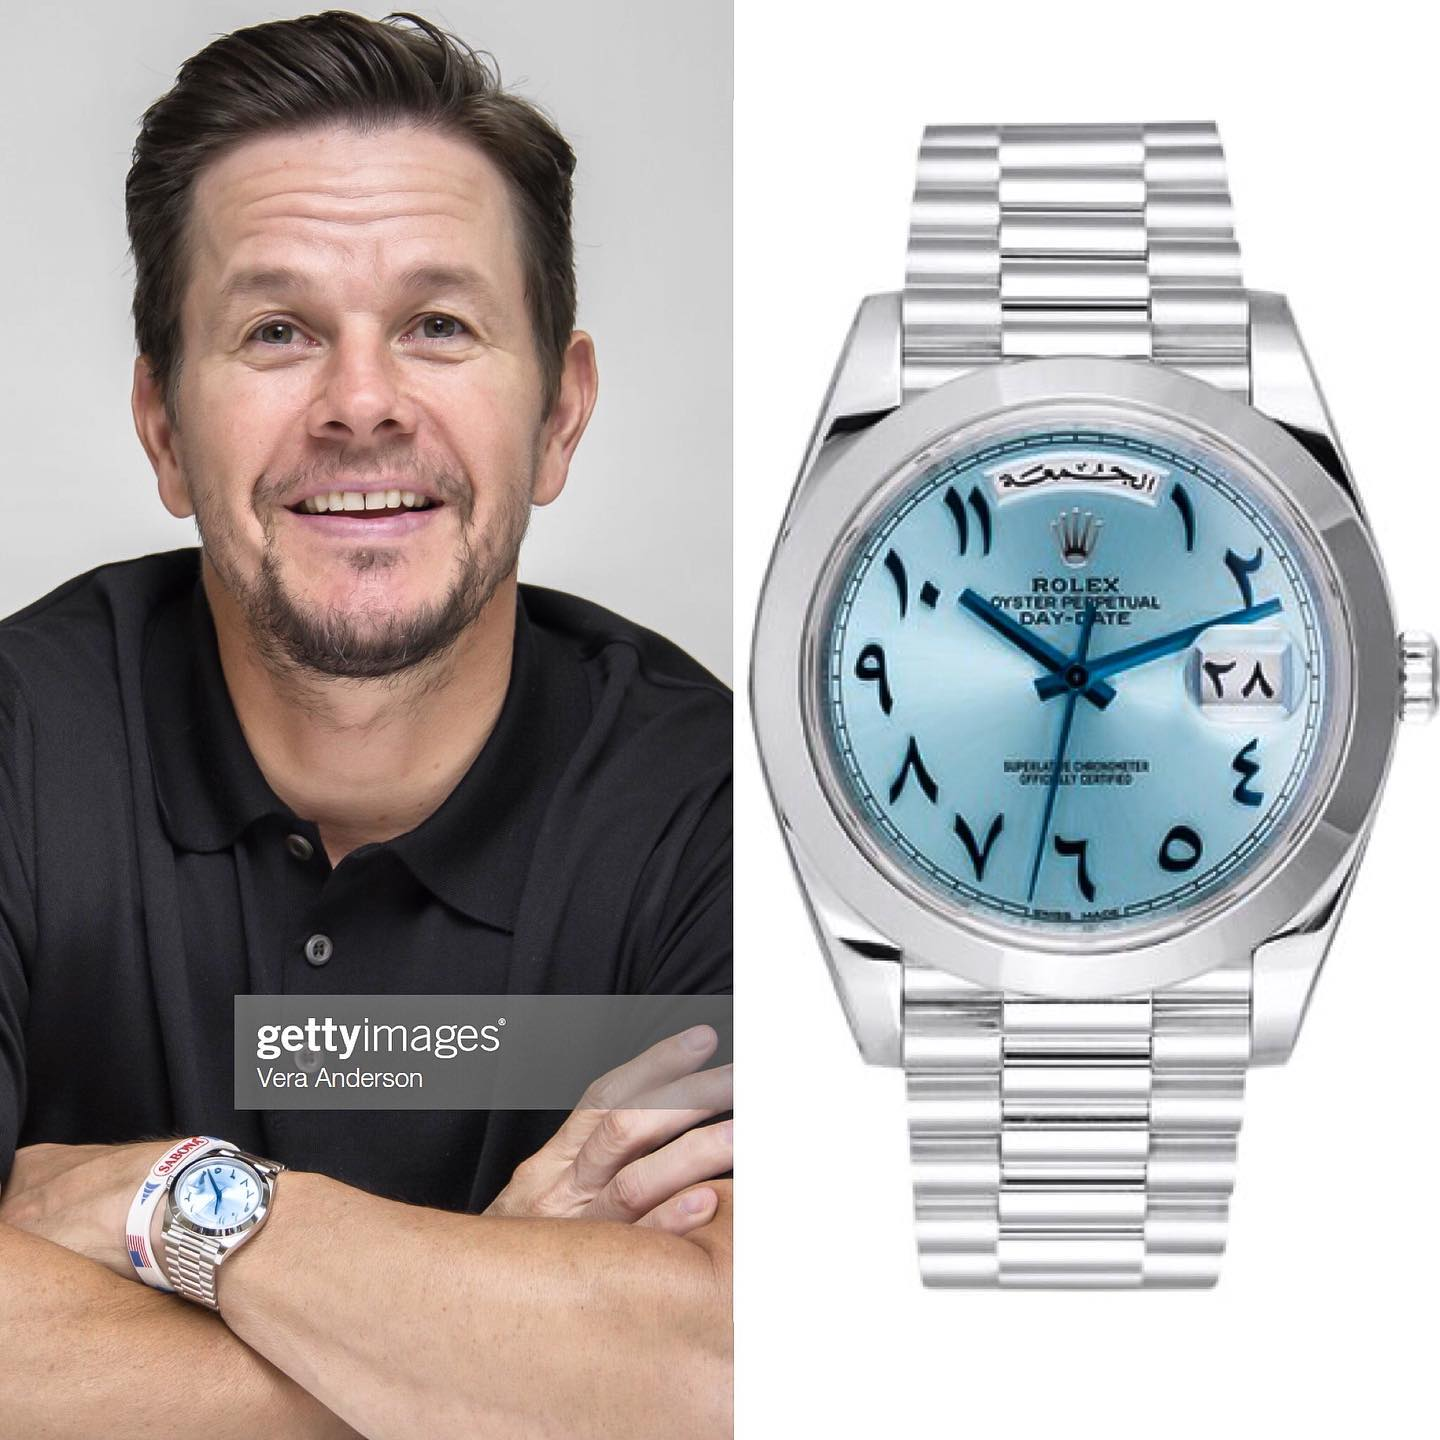 Hollywood entrepreuneur and avid watch collector @markwahlberg is here sporting a rare @rolex Day-Date 40 in Platinum with ice blue Arabic dial ️ ️ 70,000.00 📸 @superwatchman